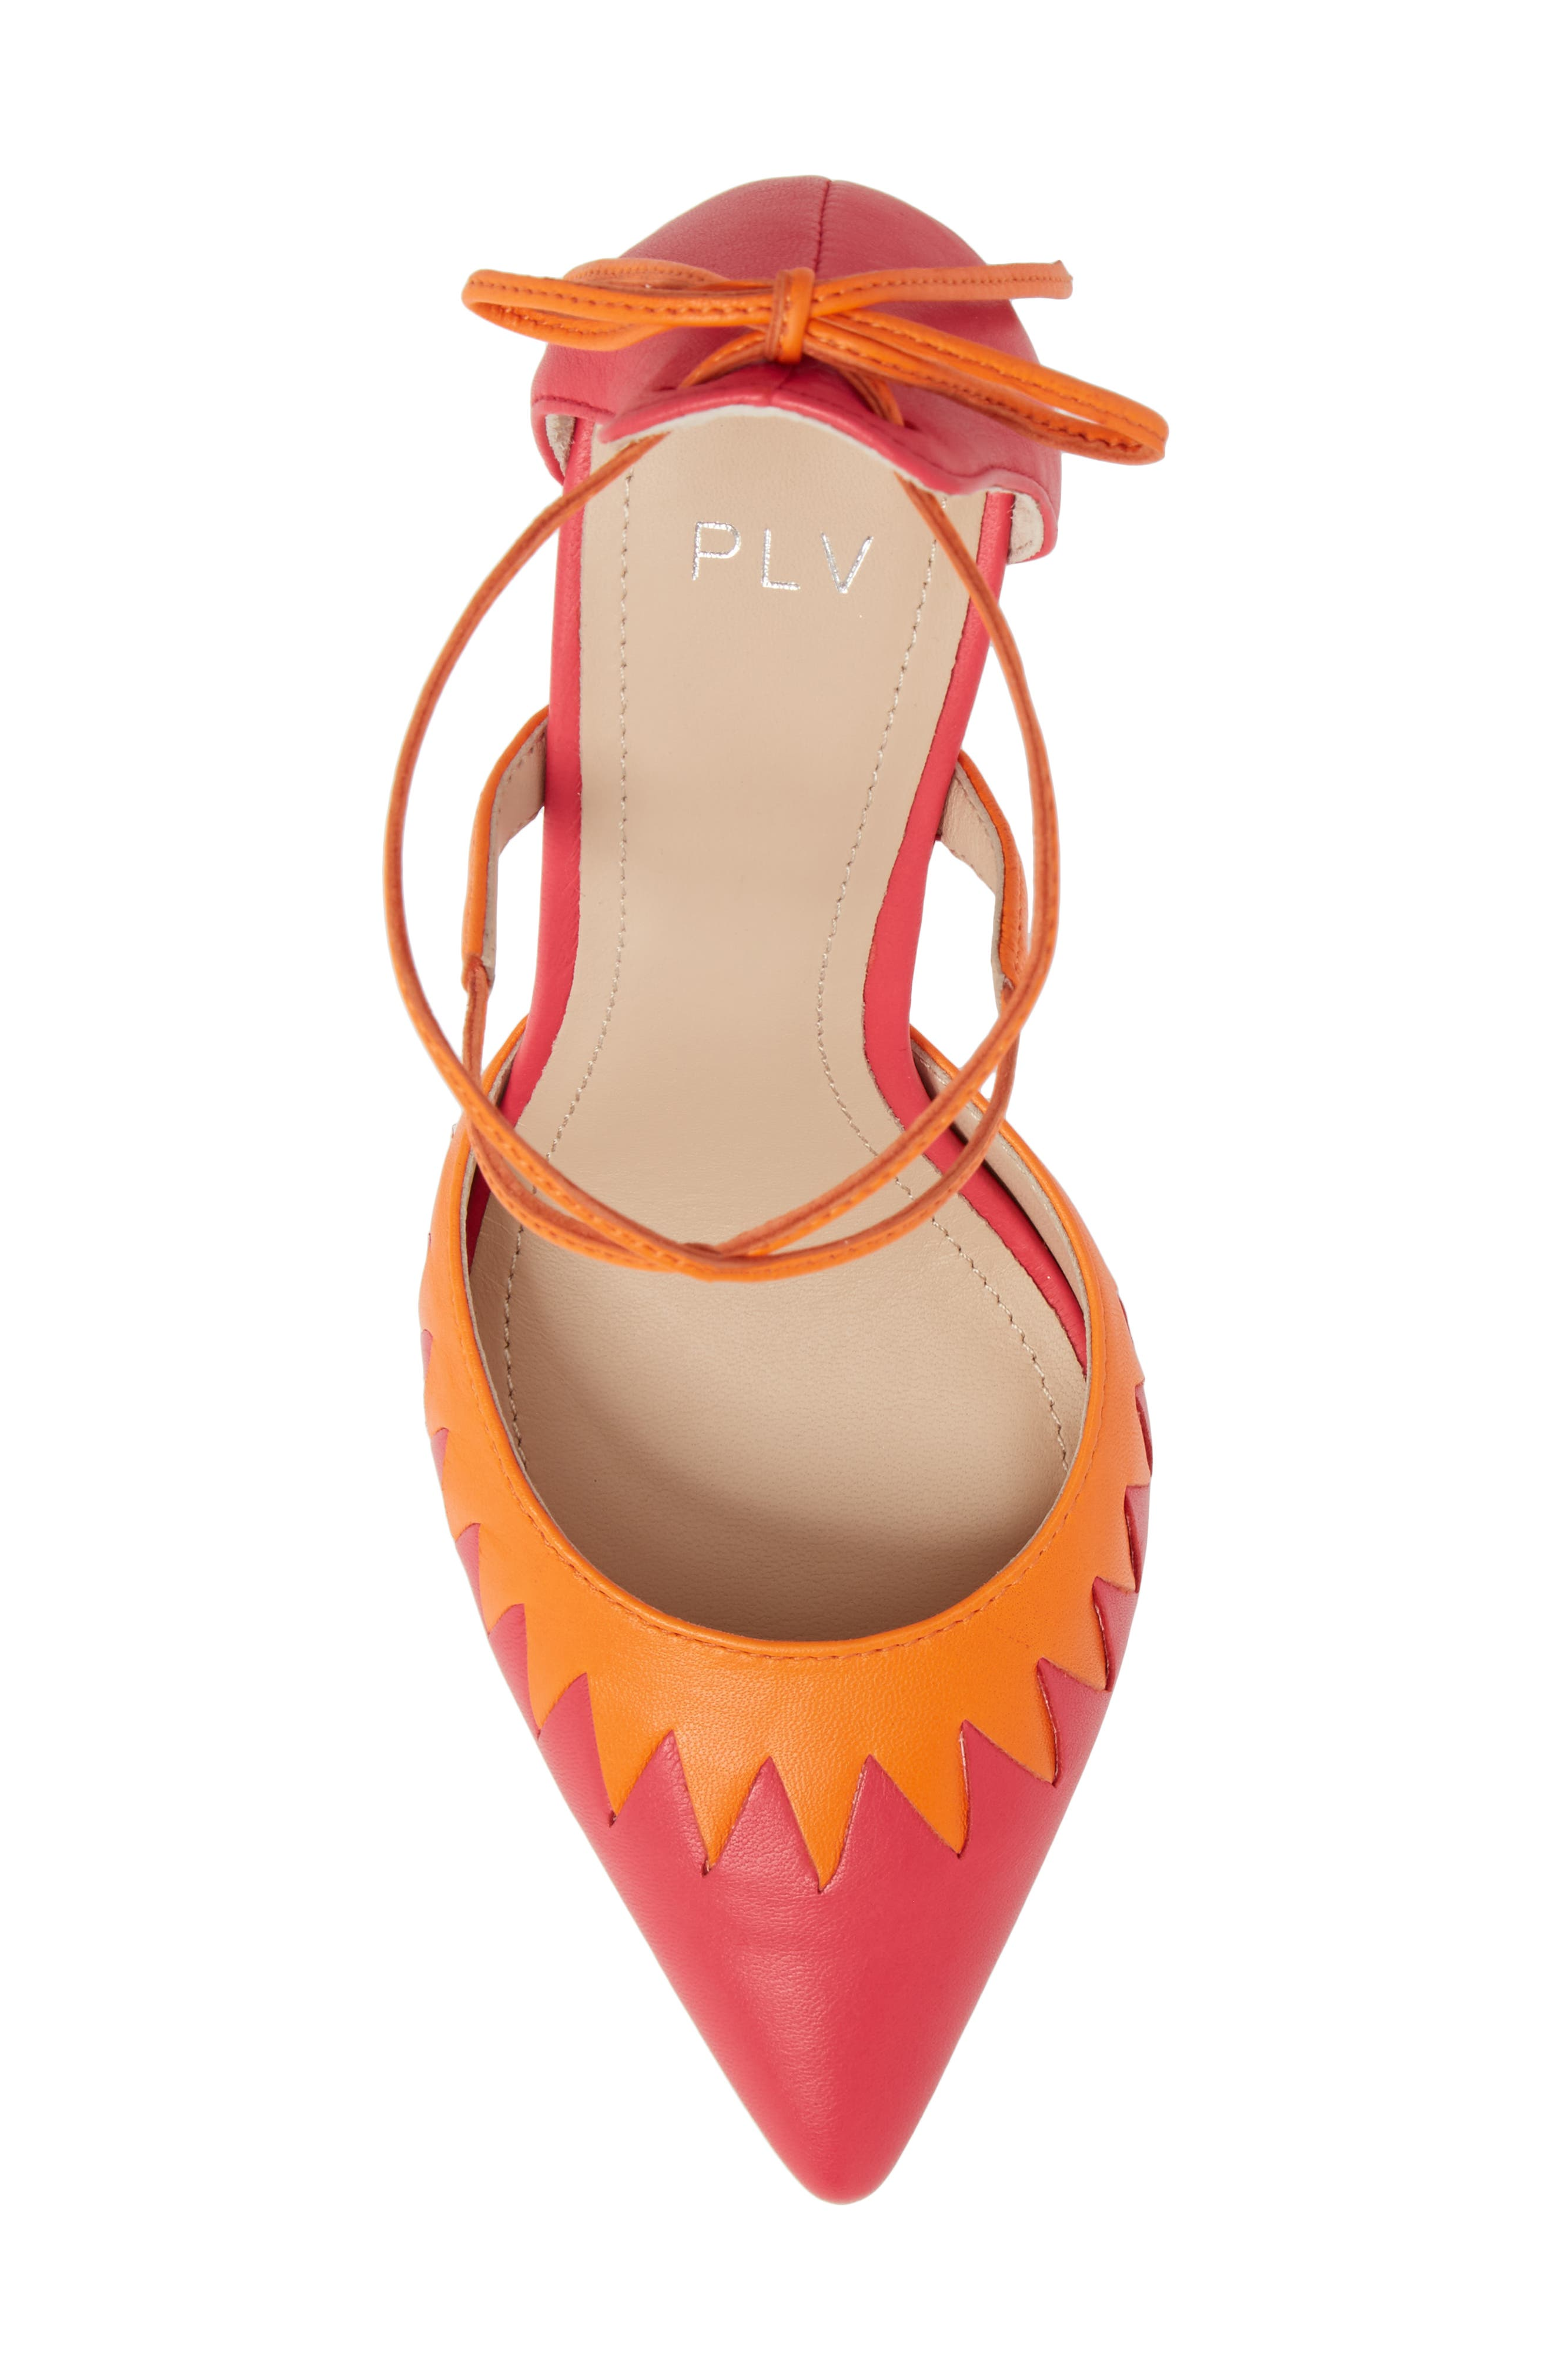 Cenya Pump,                             Alternate thumbnail 5, color,                             Azalea/ Orange Blossom Leather